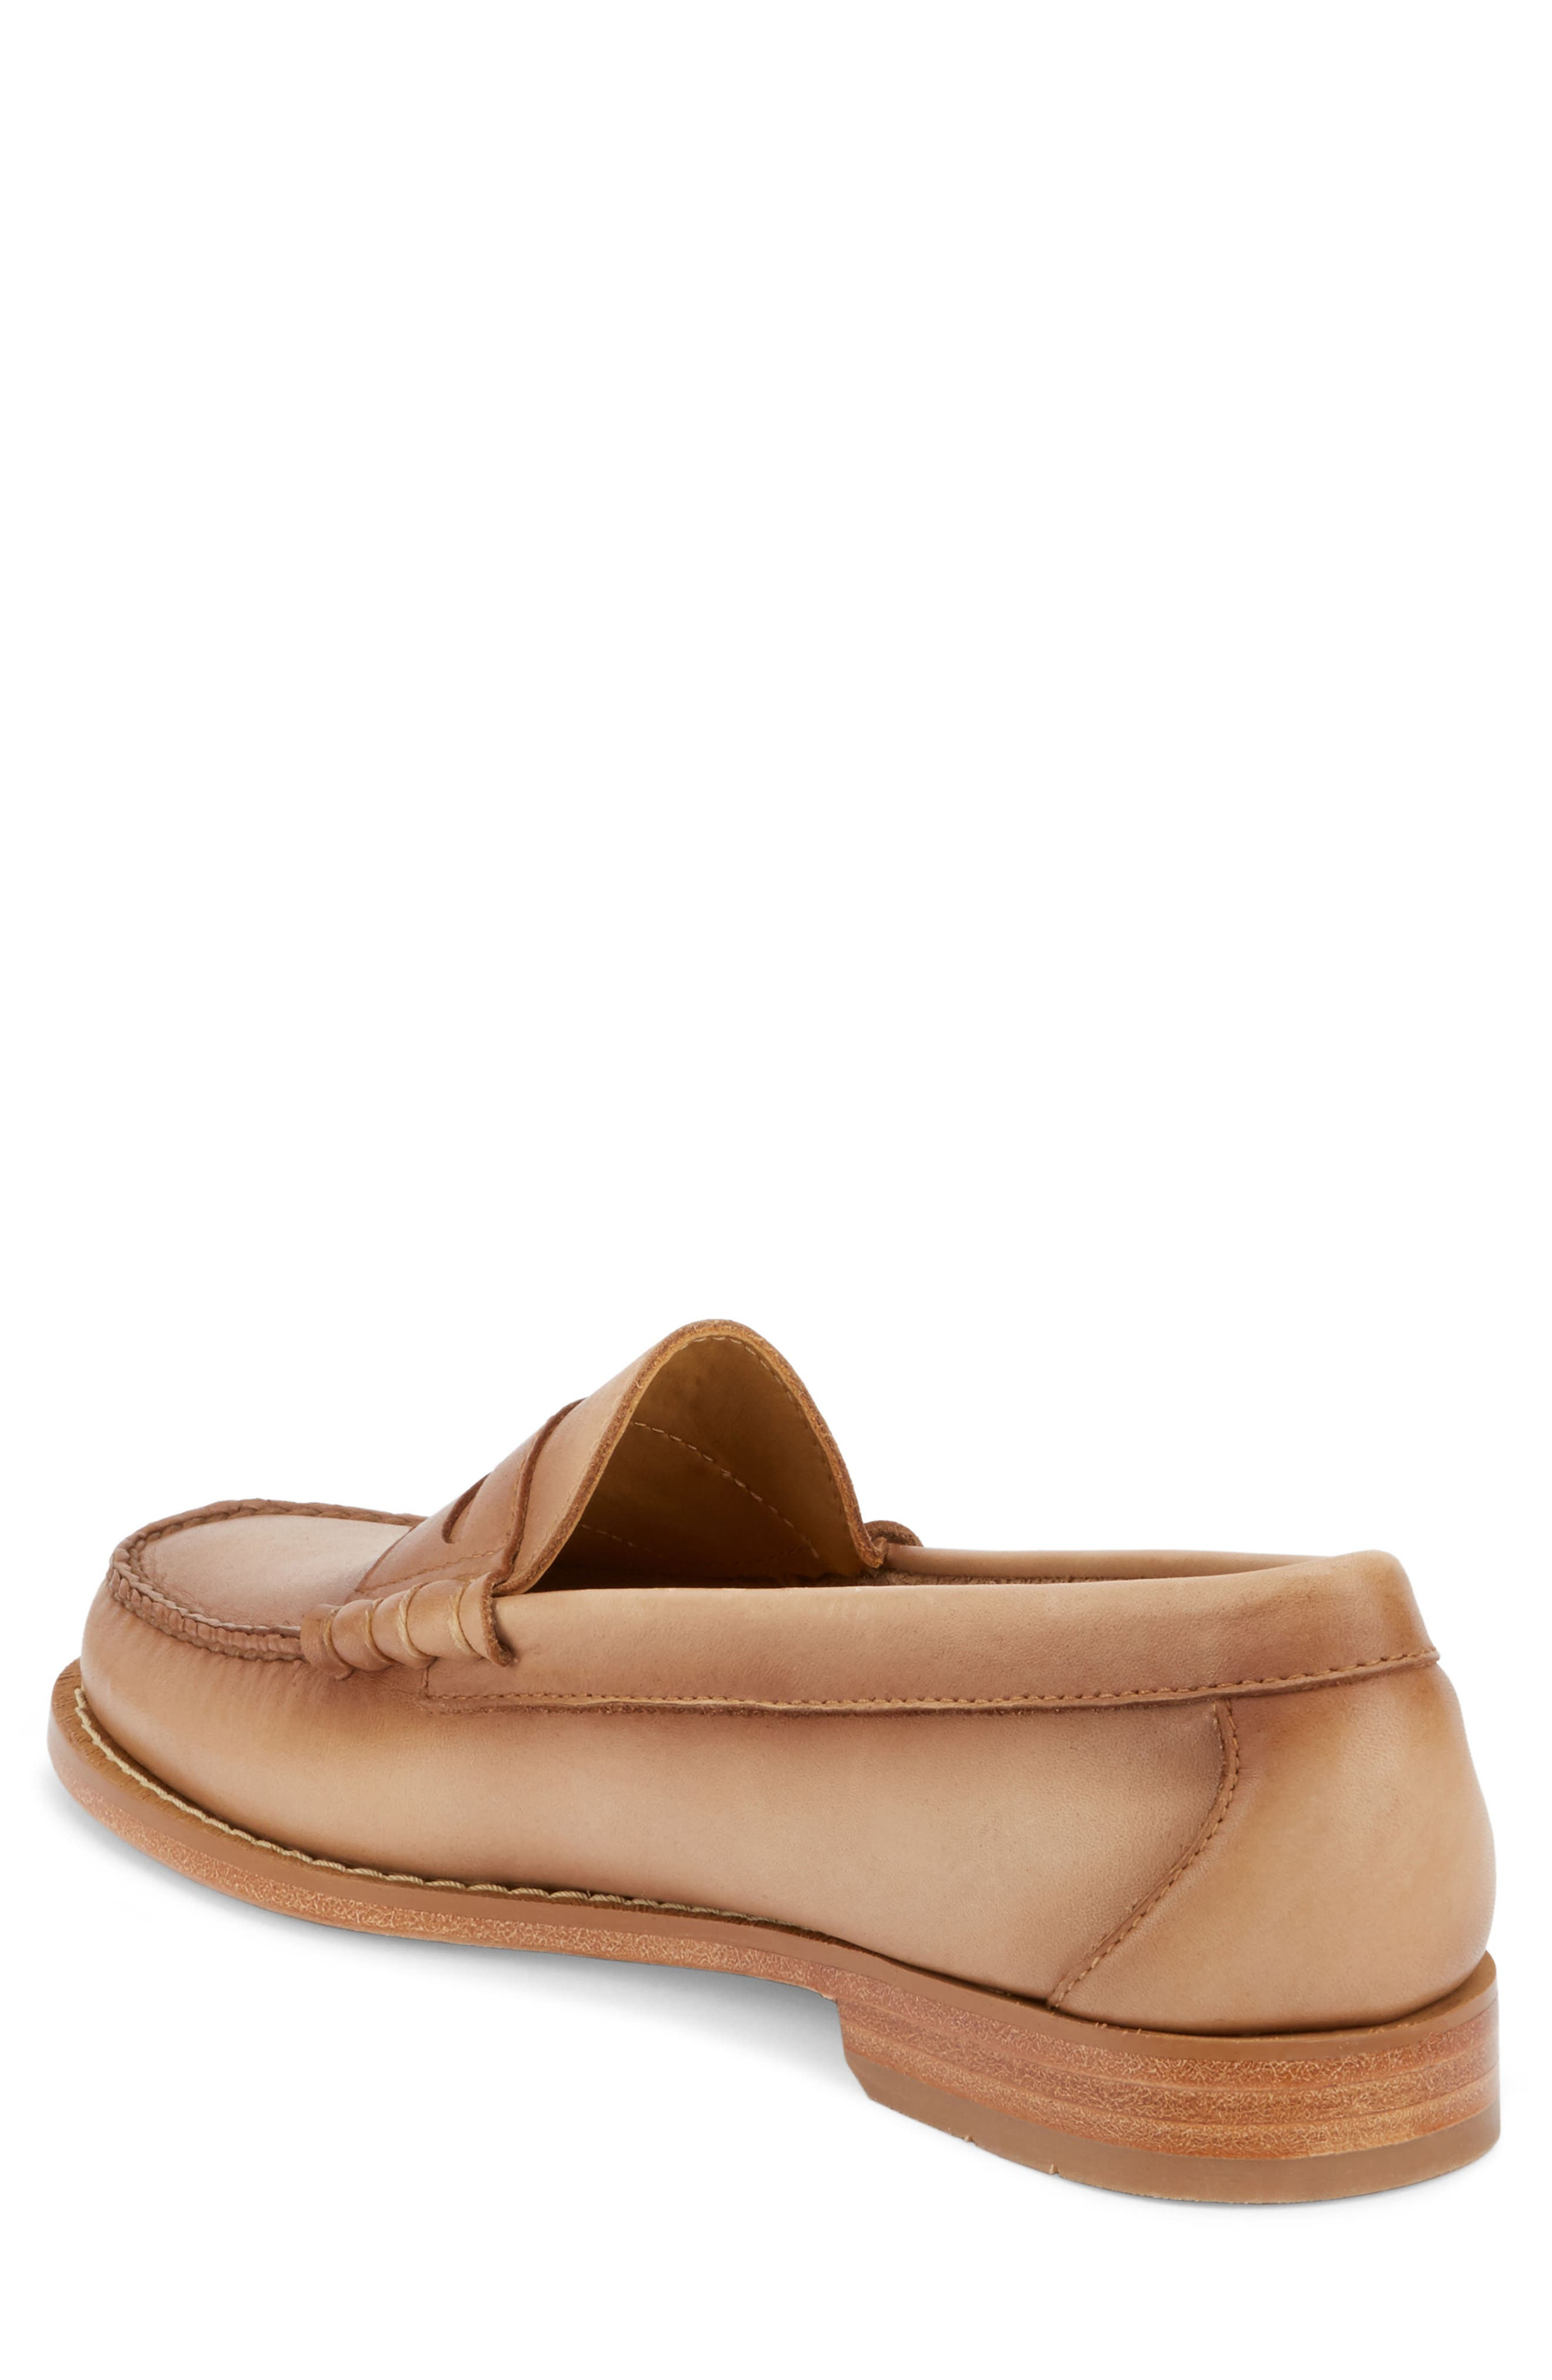 'Larson - Weejuns' Penny Loafer,                             Alternate thumbnail 2, color,                             VACHETTA LEATHER